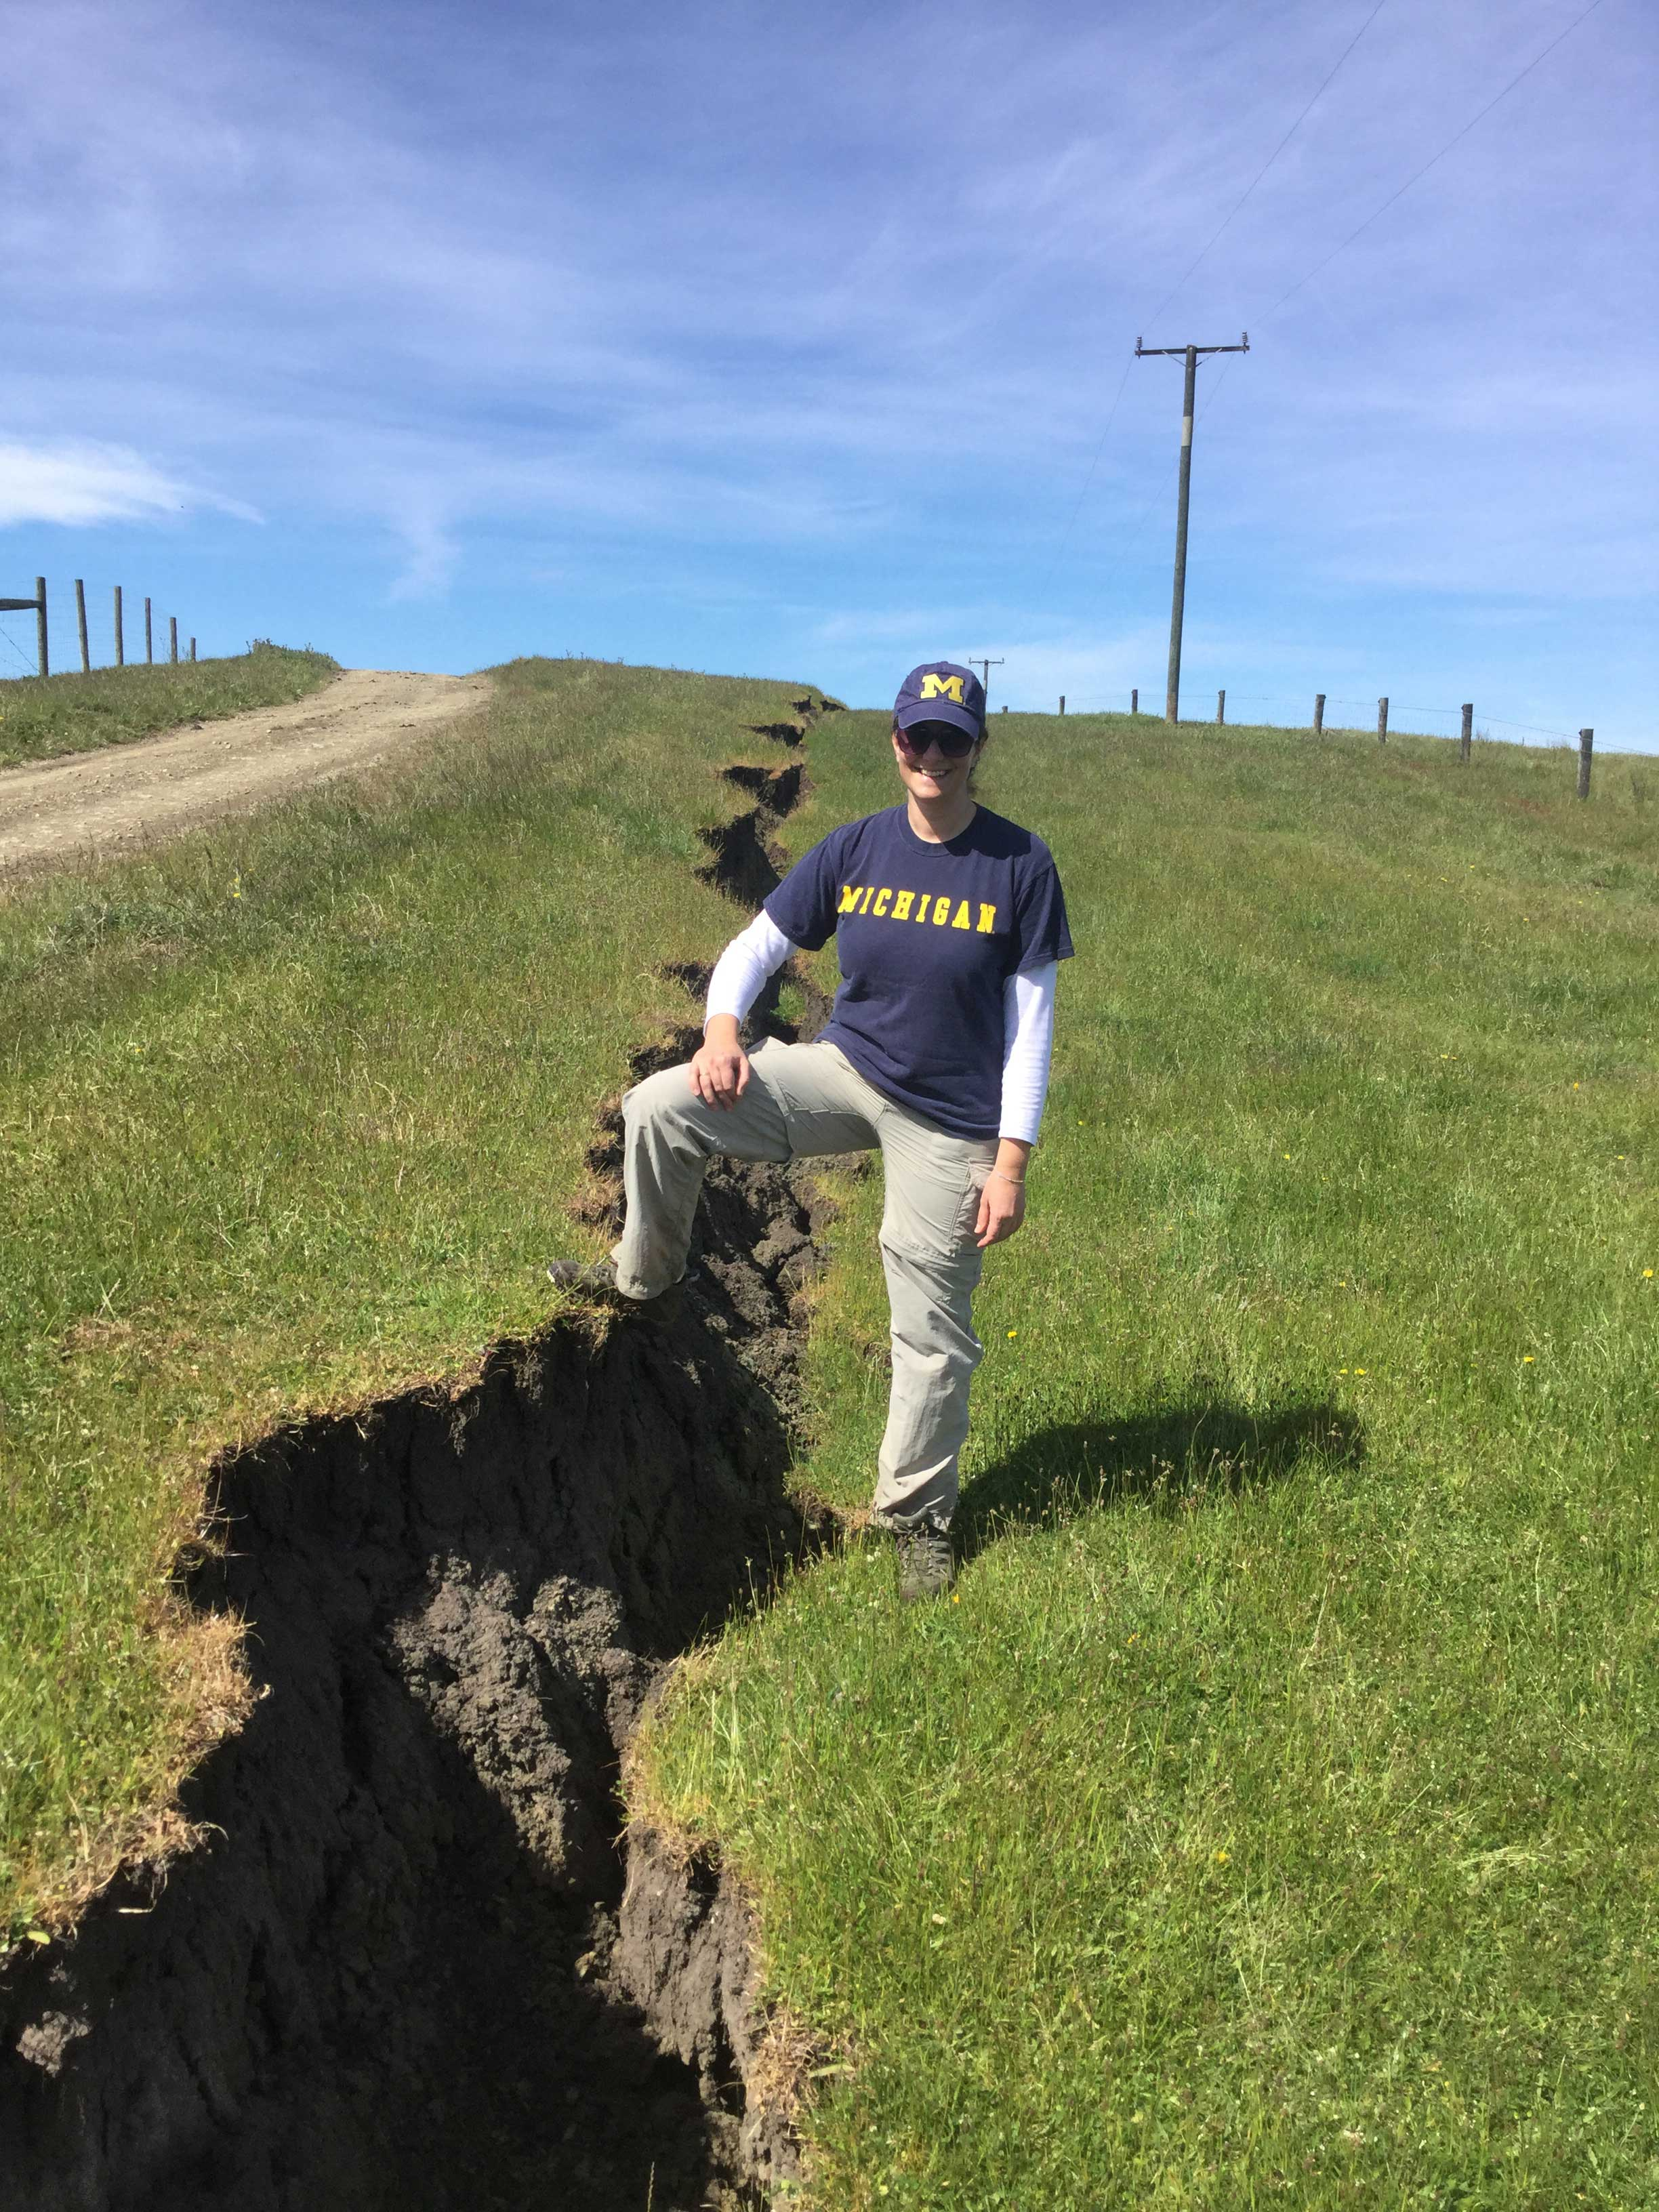 U-M researcher Adda Athanasopoulos-Zekkos at a fault-rupture site east of Hanmer Springs, New Zealand. Image credit: Joe Wartman